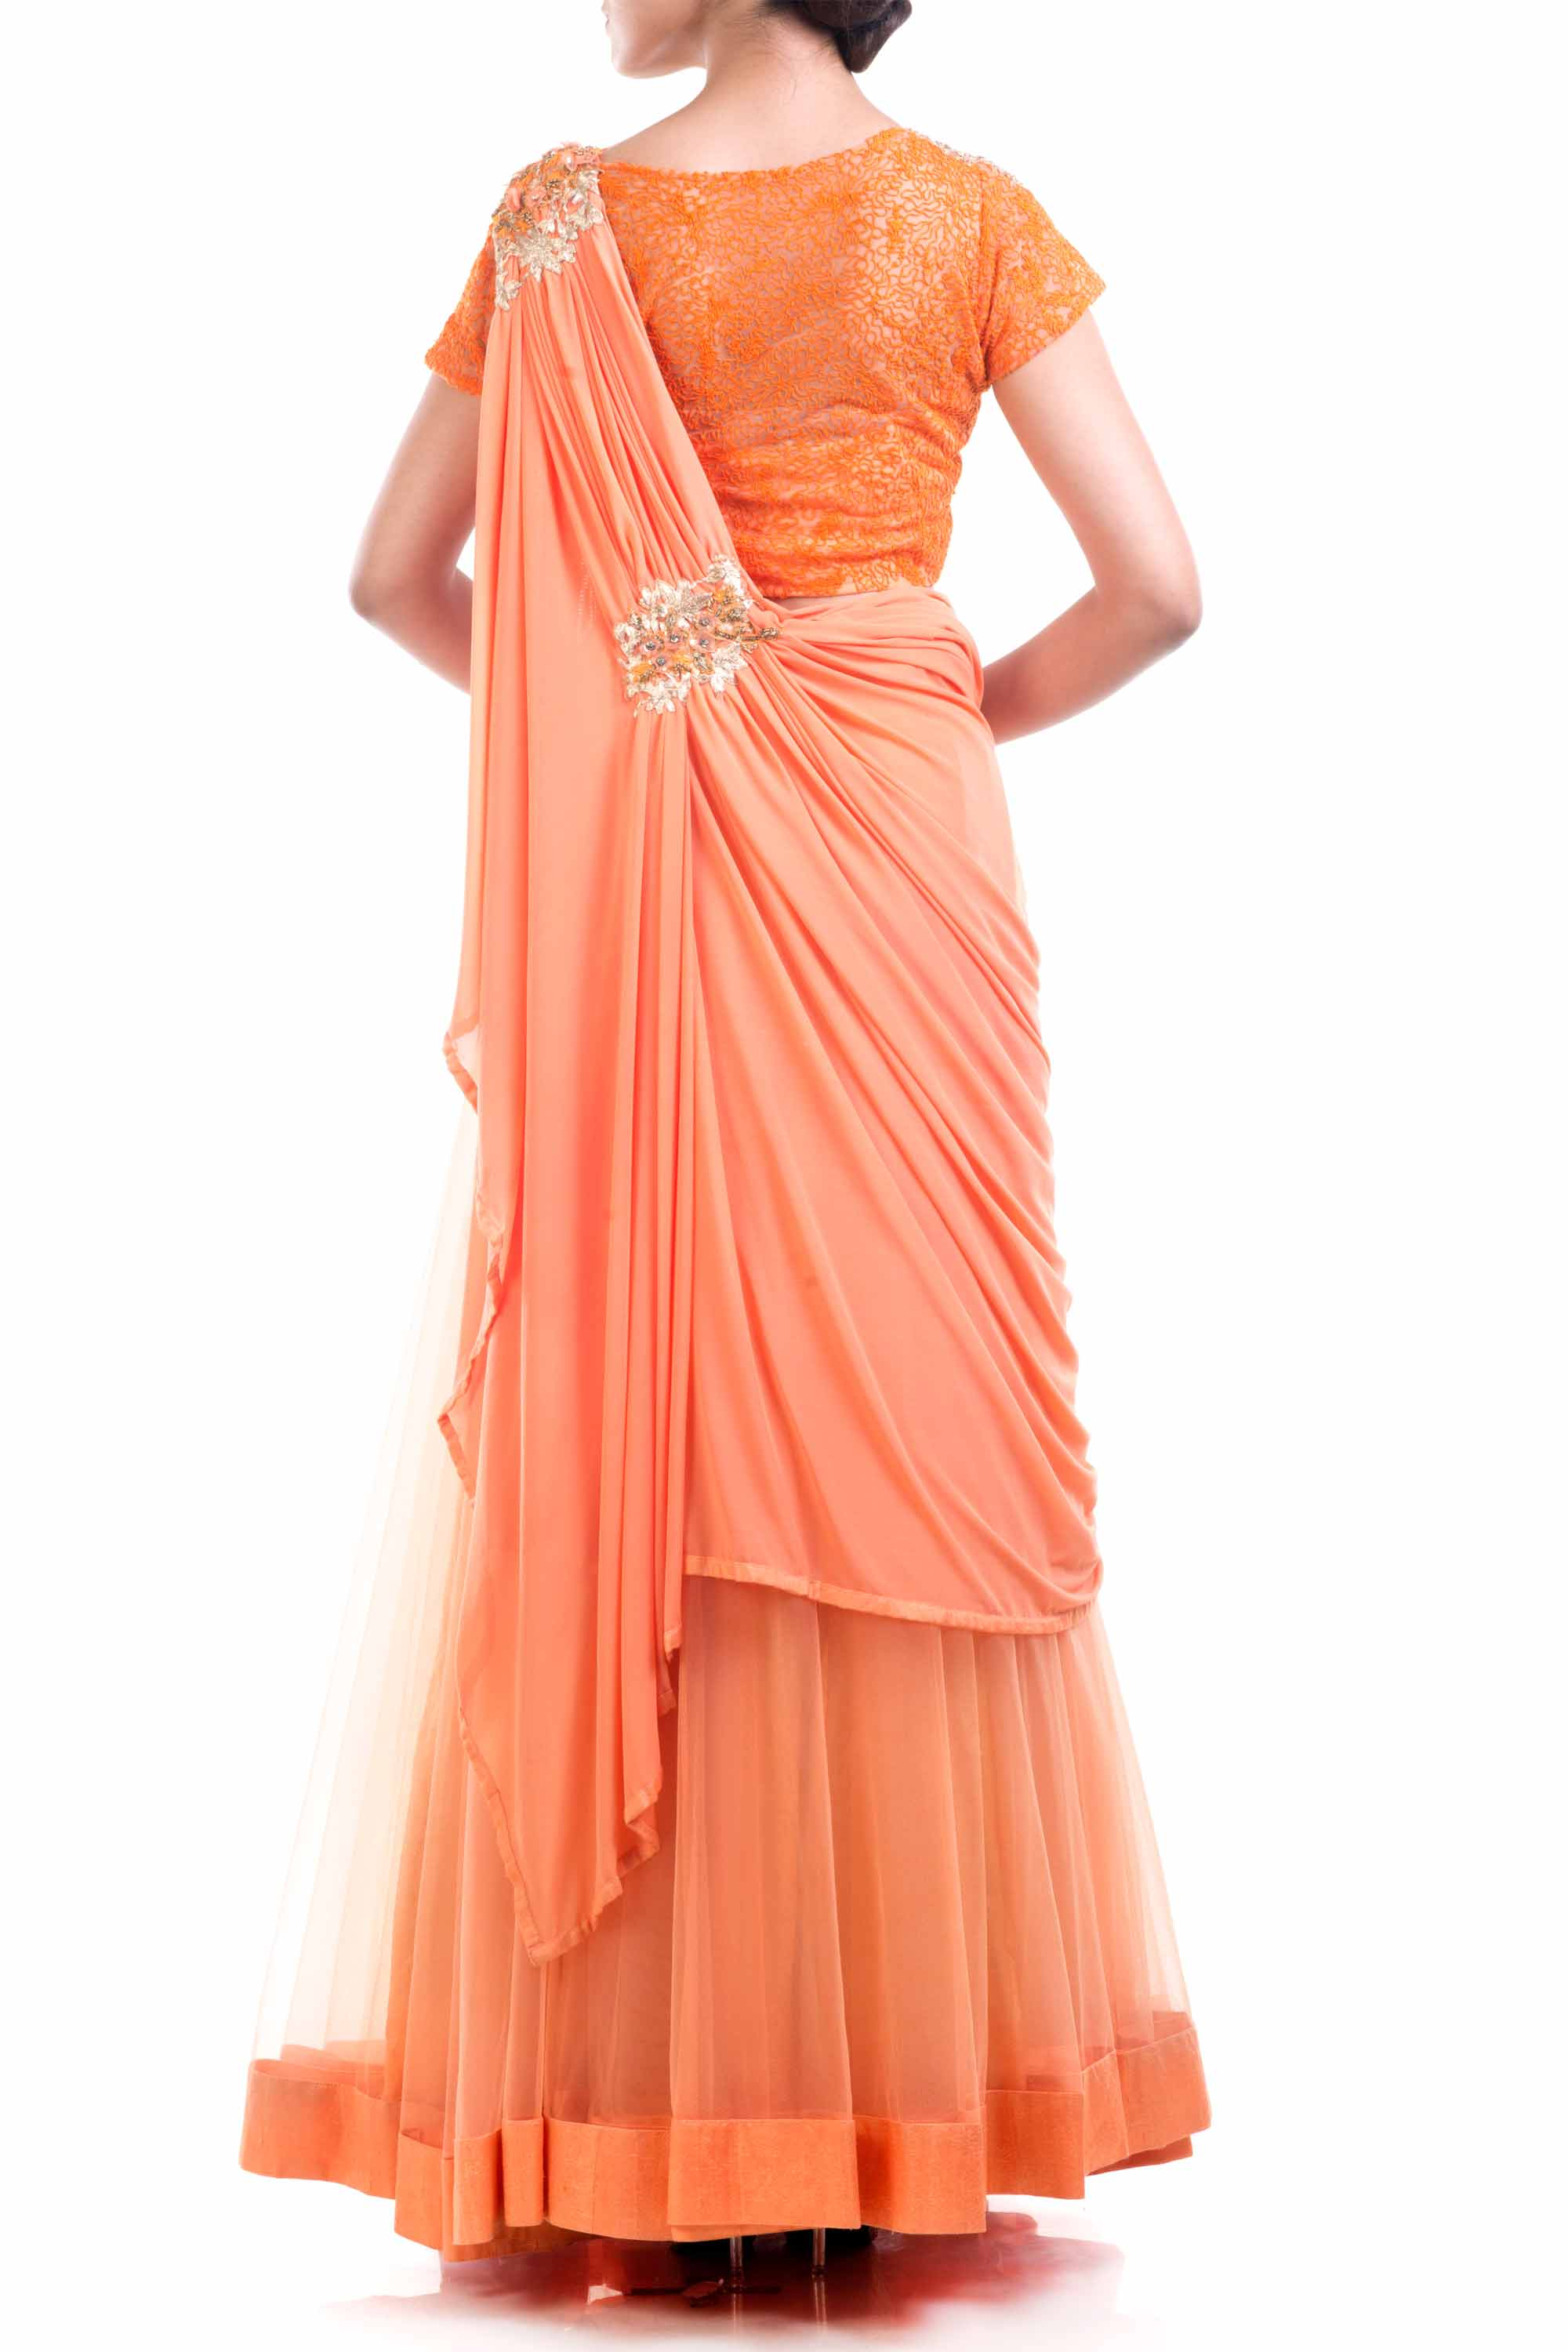 Tangerine Orange Draped Lehenga Gown Back